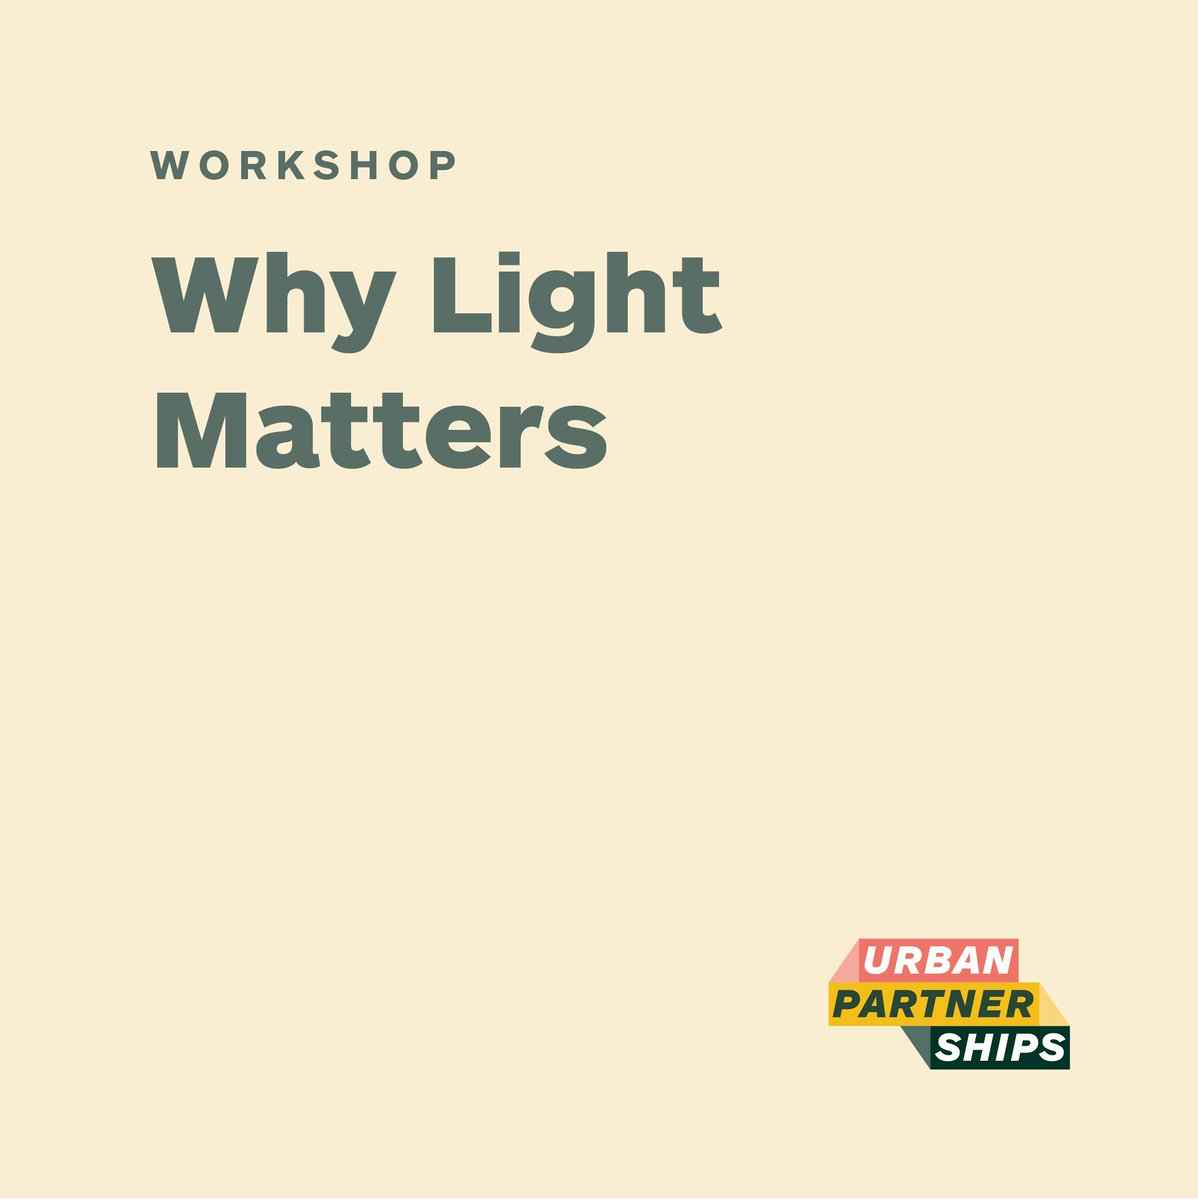 Get some thought-provoking insights into light's impact on #health and ideas for how we can learn to live healthier with #light from BLOXHUB's latest cross-disciplinary workshop co-organized with our inspiring friends at @LysTechnologies : https://t.co/lV9ieF4ZxK